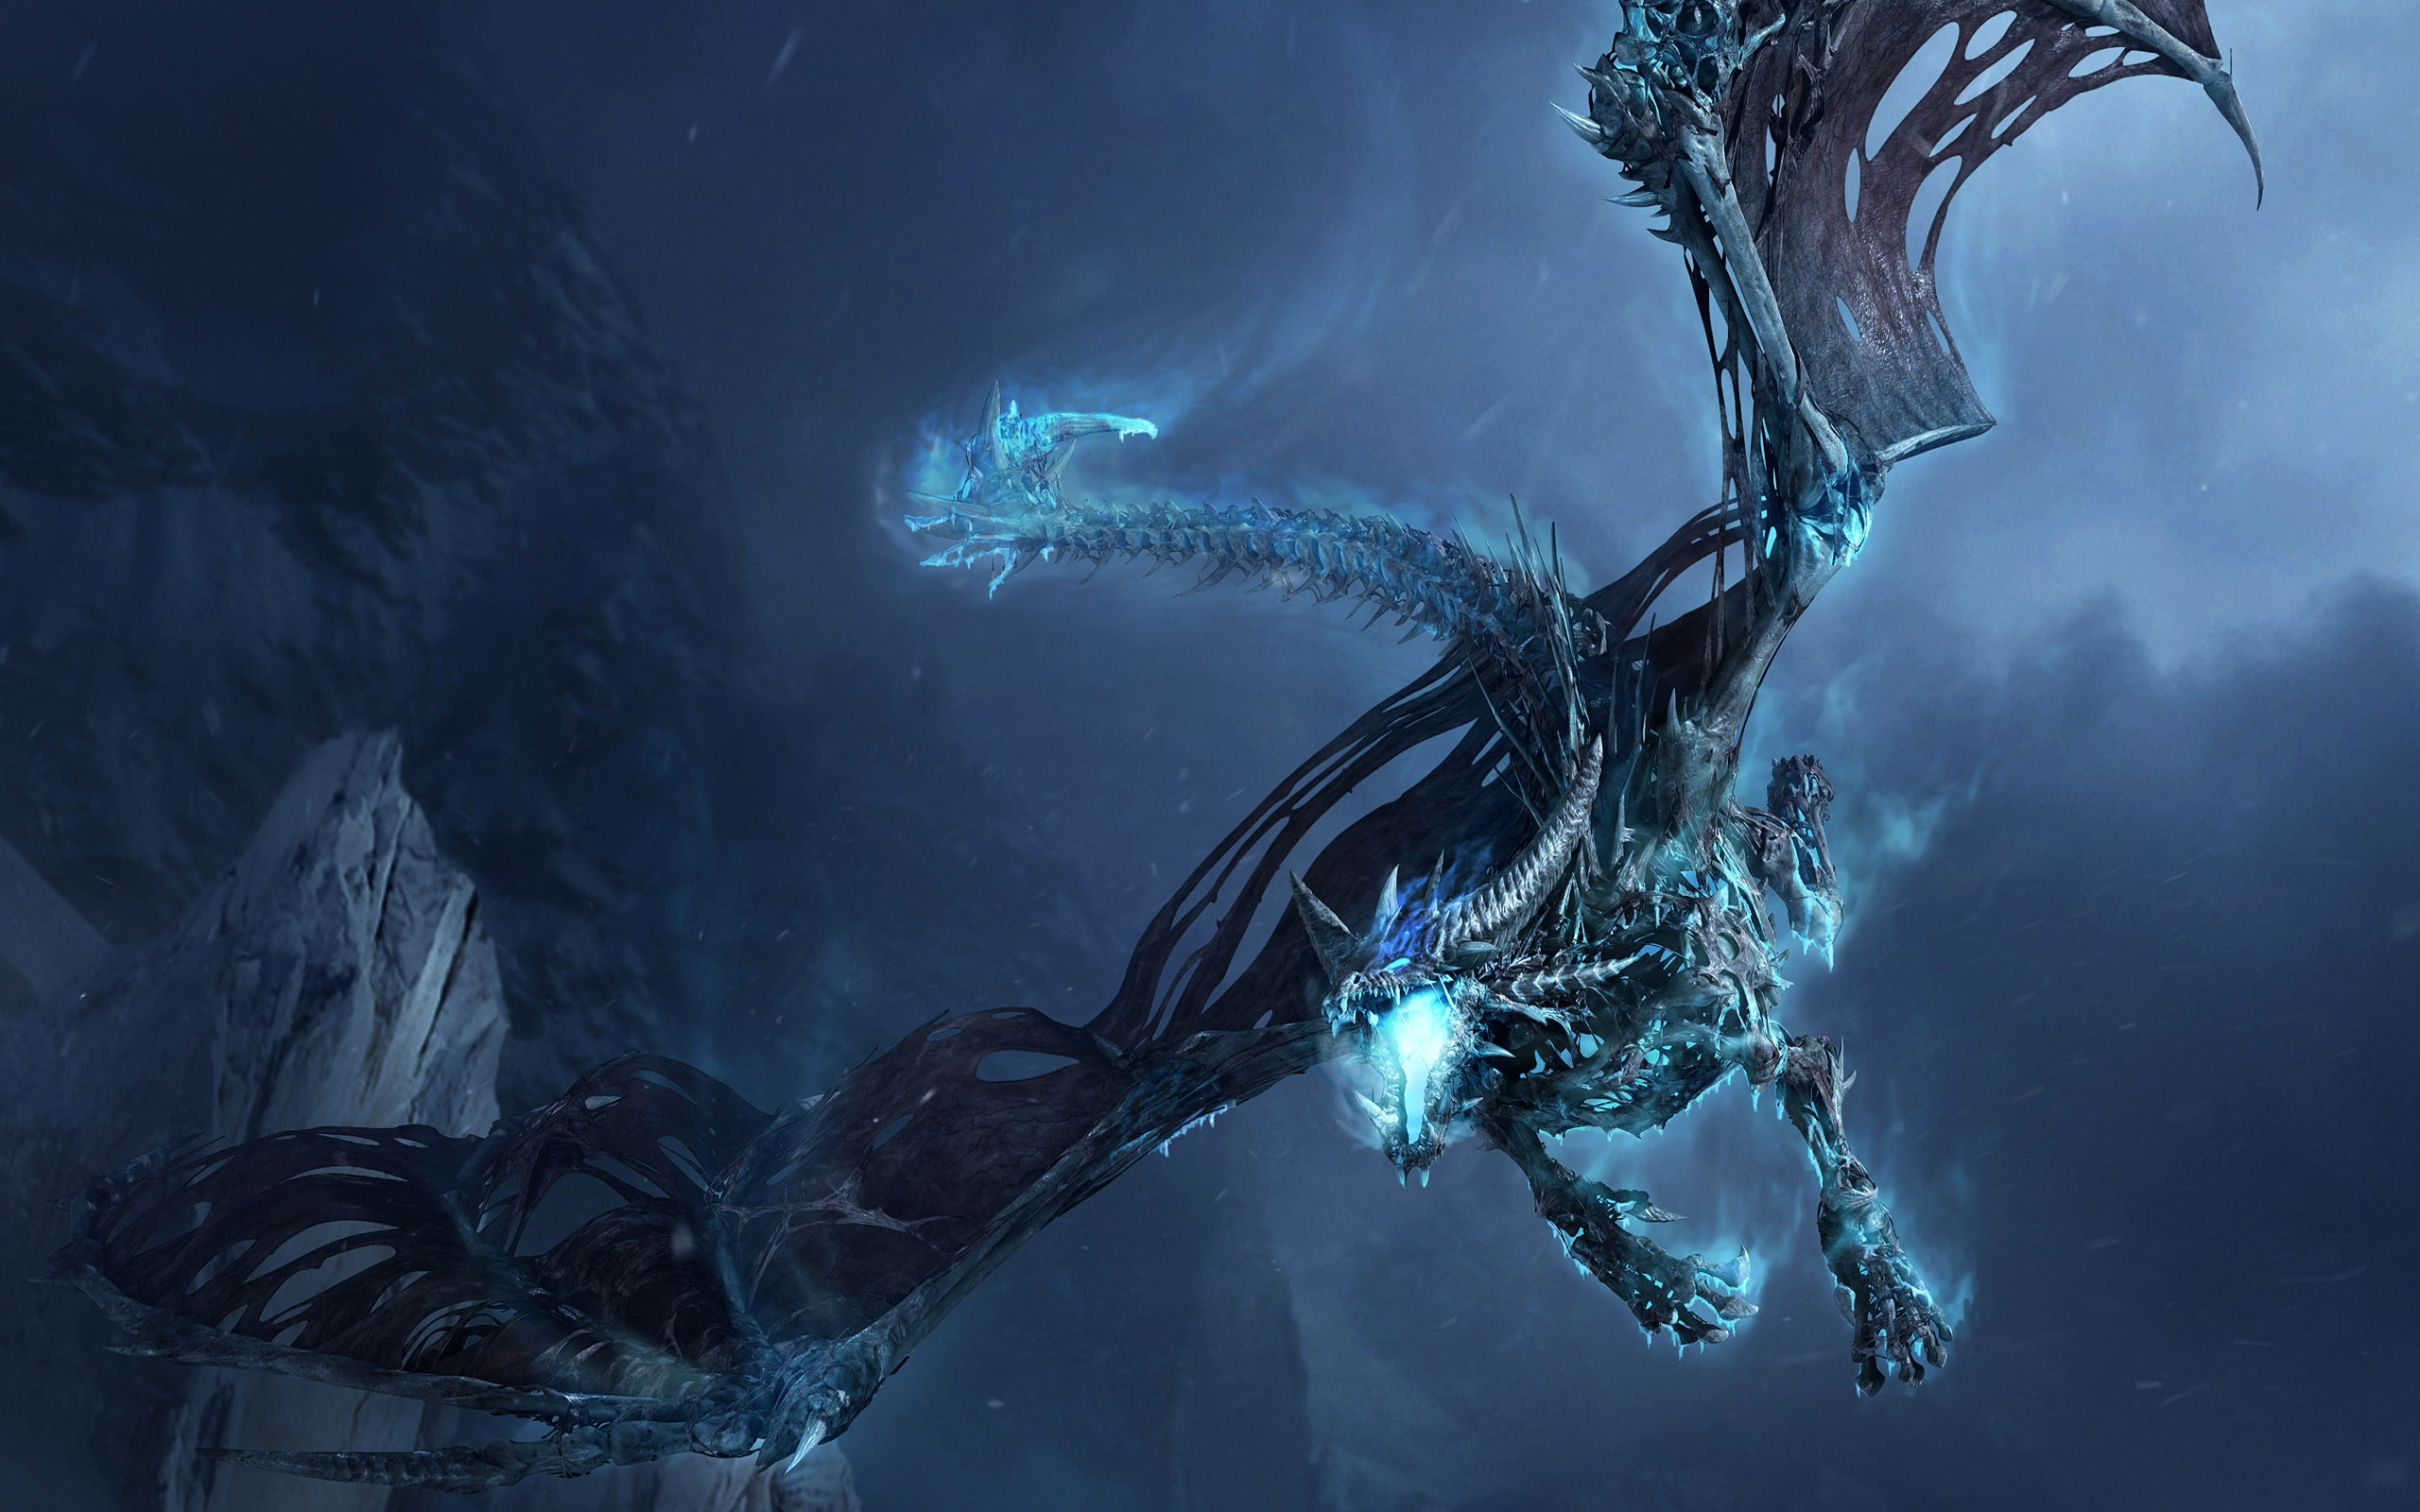 Awesome Wallpaper Dragon 2088 Wallpaper Cool Walldiskpapercom 2560x1600